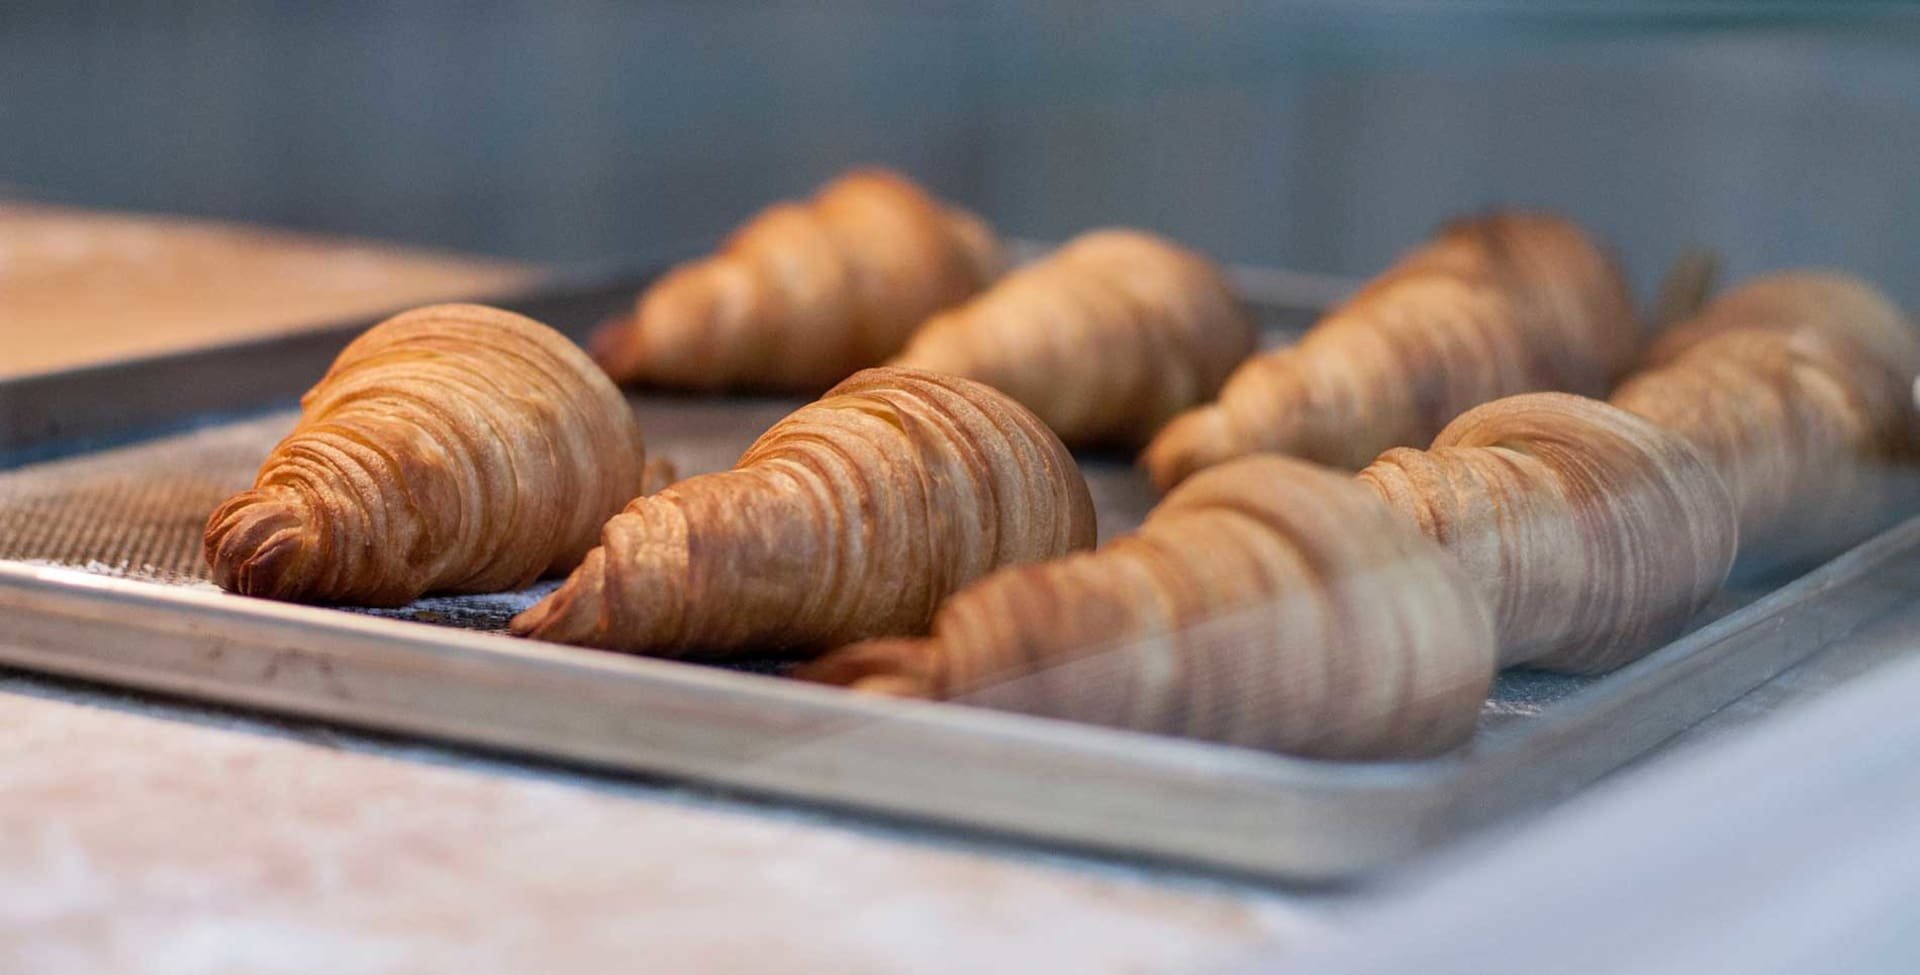 Enjoy the Relaxing Atmosphere of Our Bakery